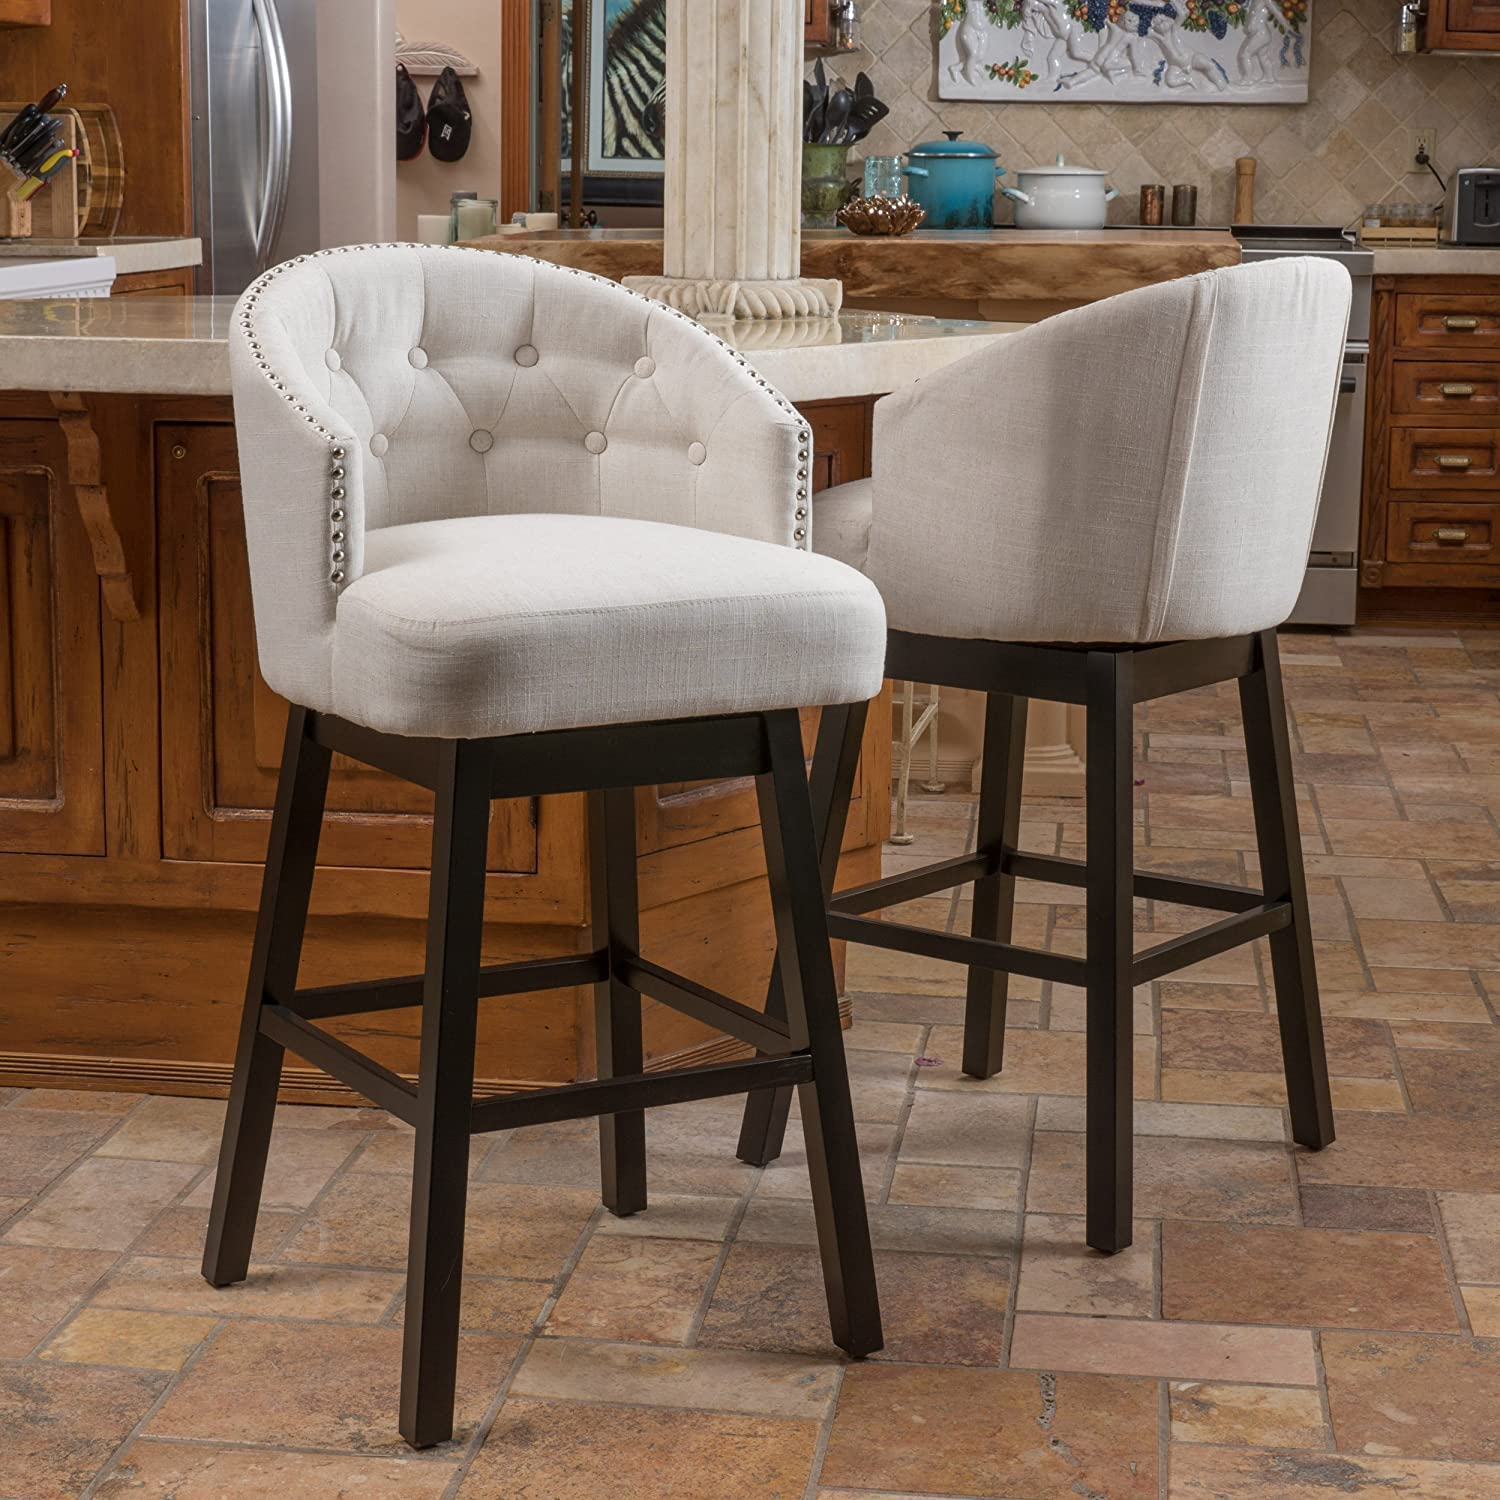 Tips For Buying Bar Stools